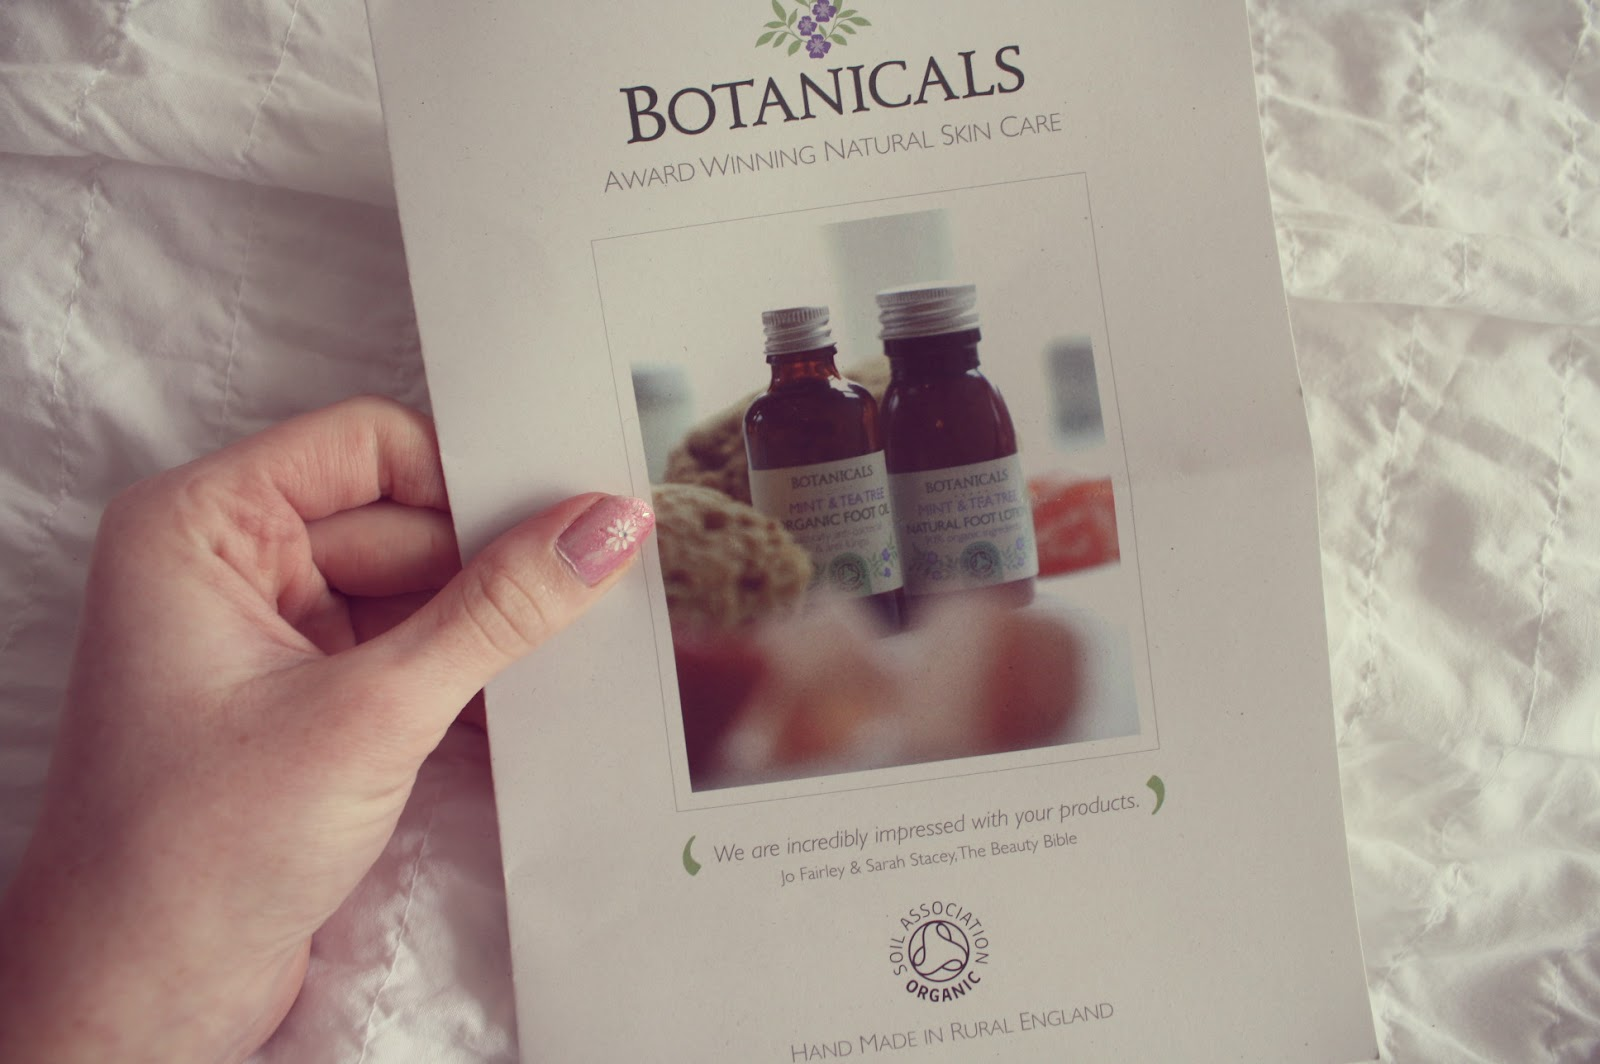 Botanicals natural skin care flyer